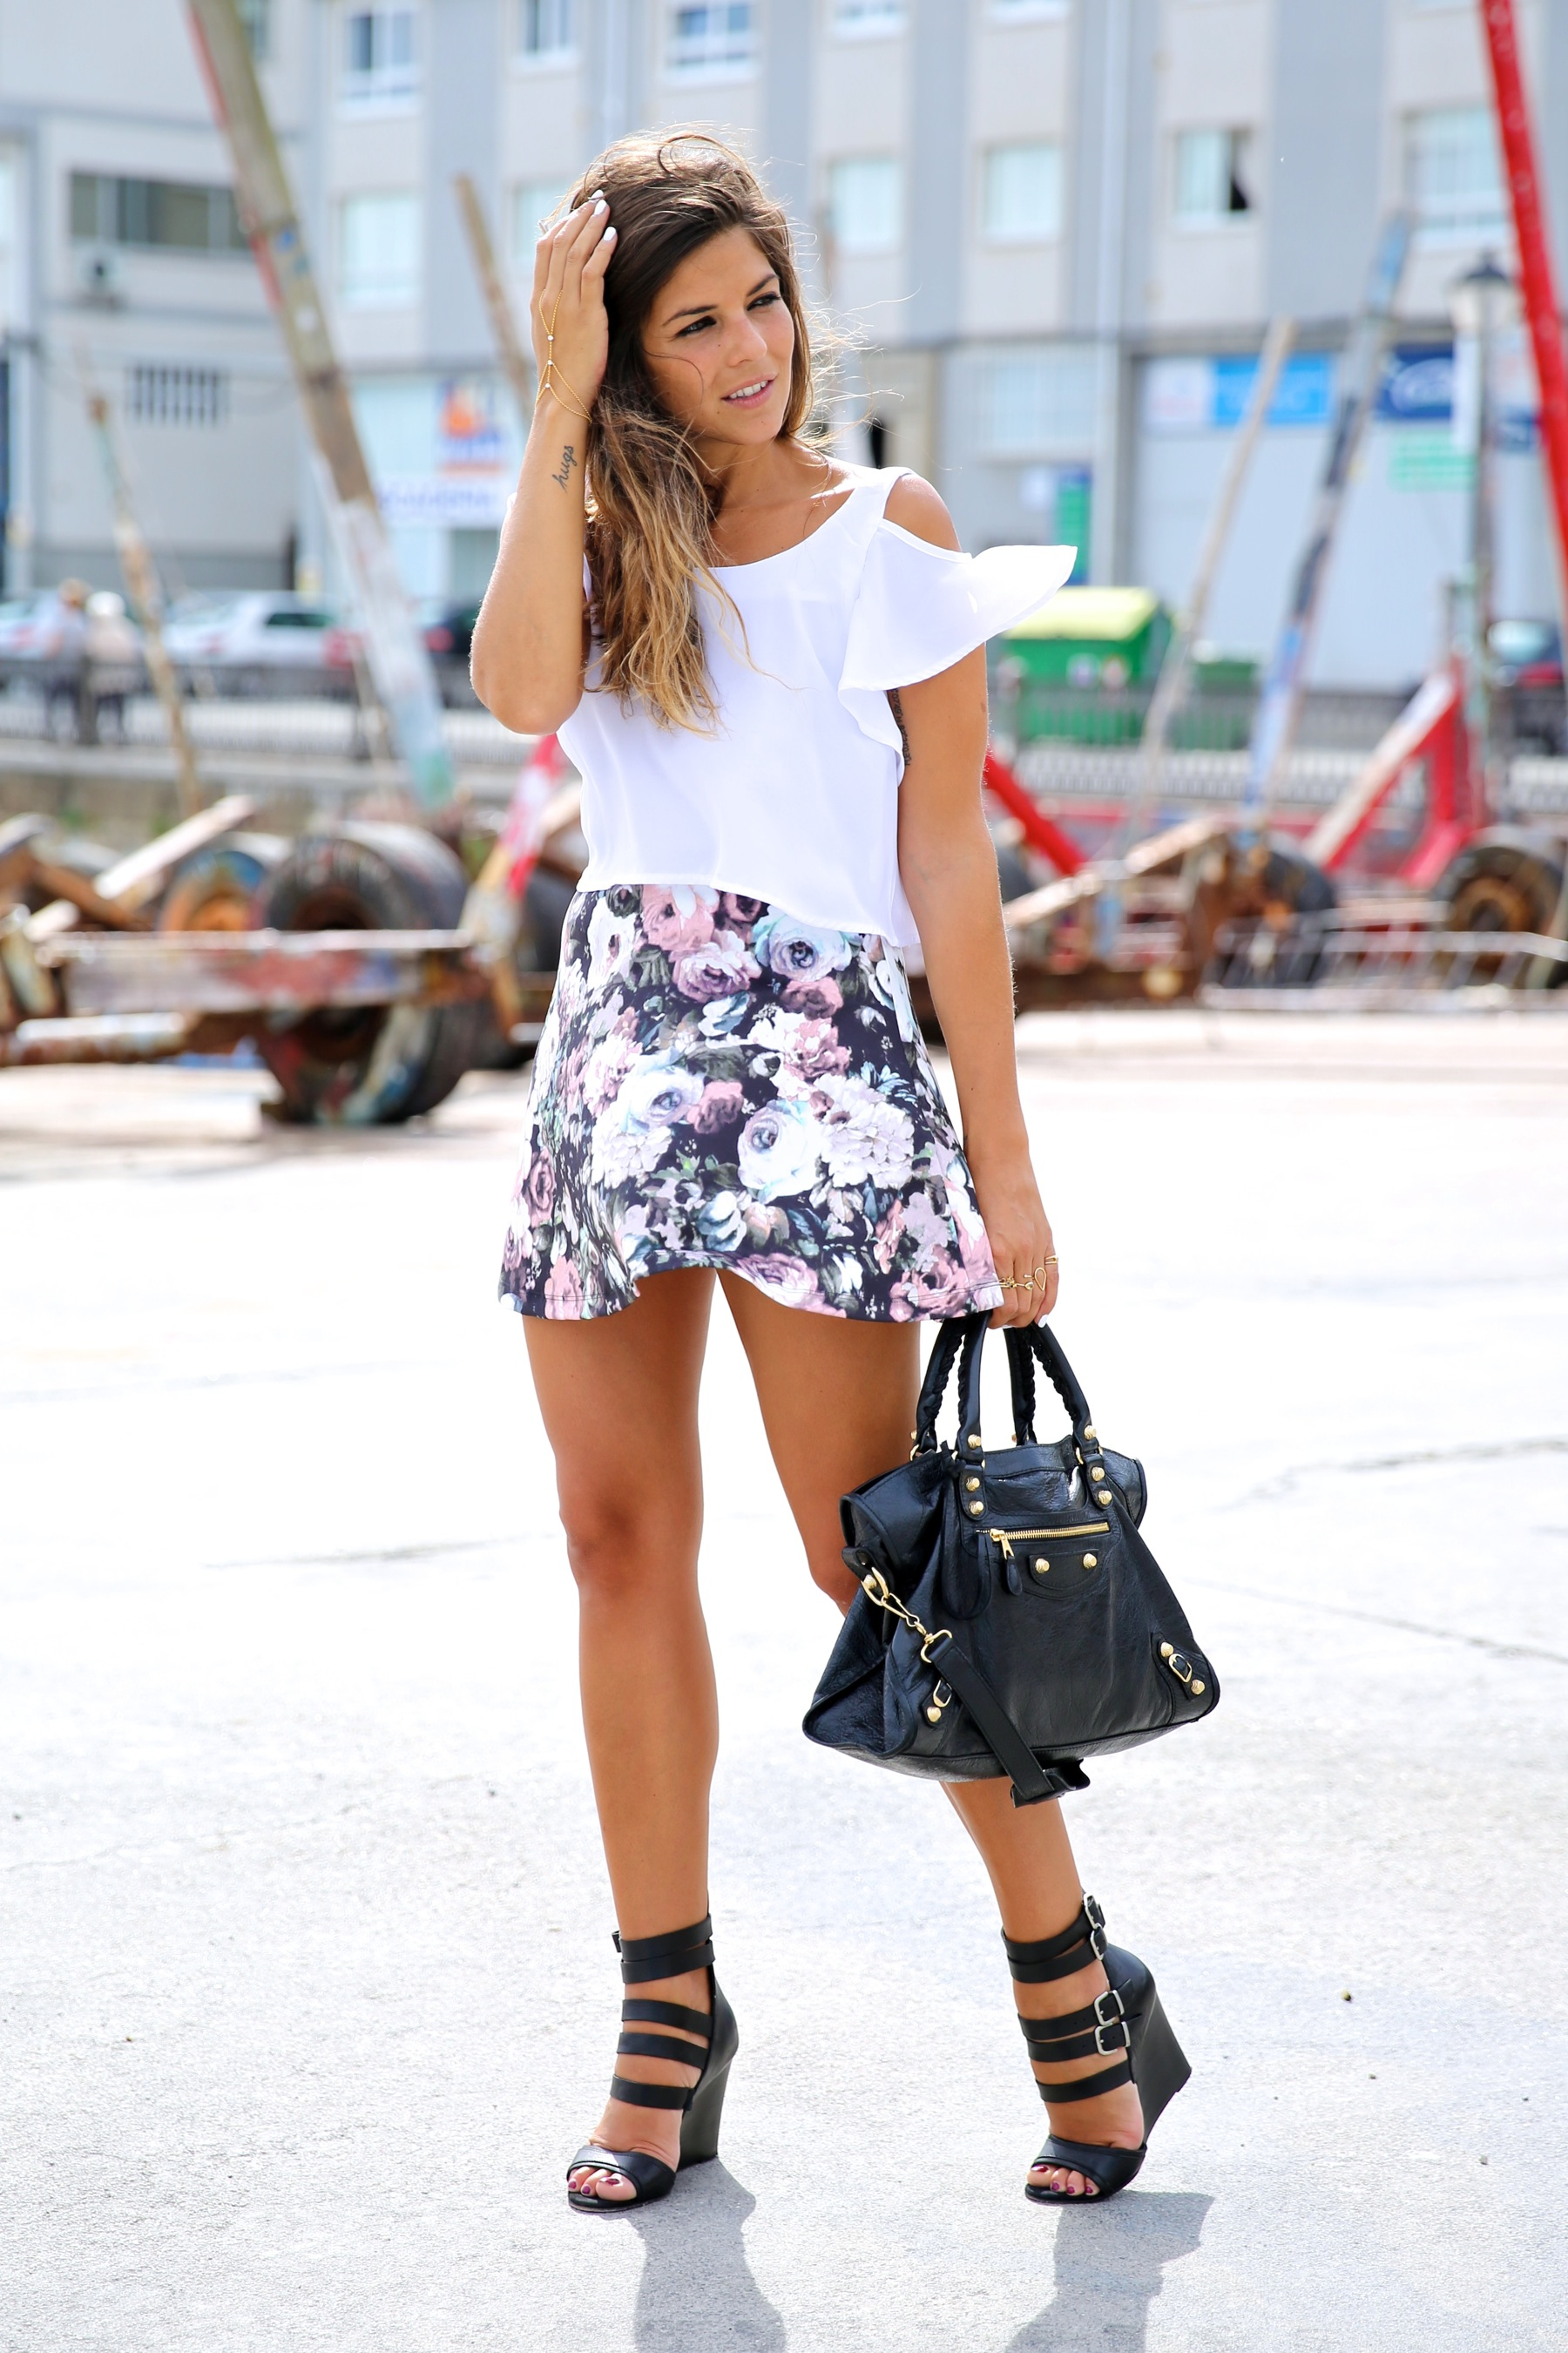 trendy_taste-look-outfit-street_style-ootd-blog-blogger-fashion_spain-moda_españa-flower_print-falda_flores-sandalias_piel-leather_sandals-maje-balenciaga-city_bag-trench-kimono-top_blanco-white_top-7